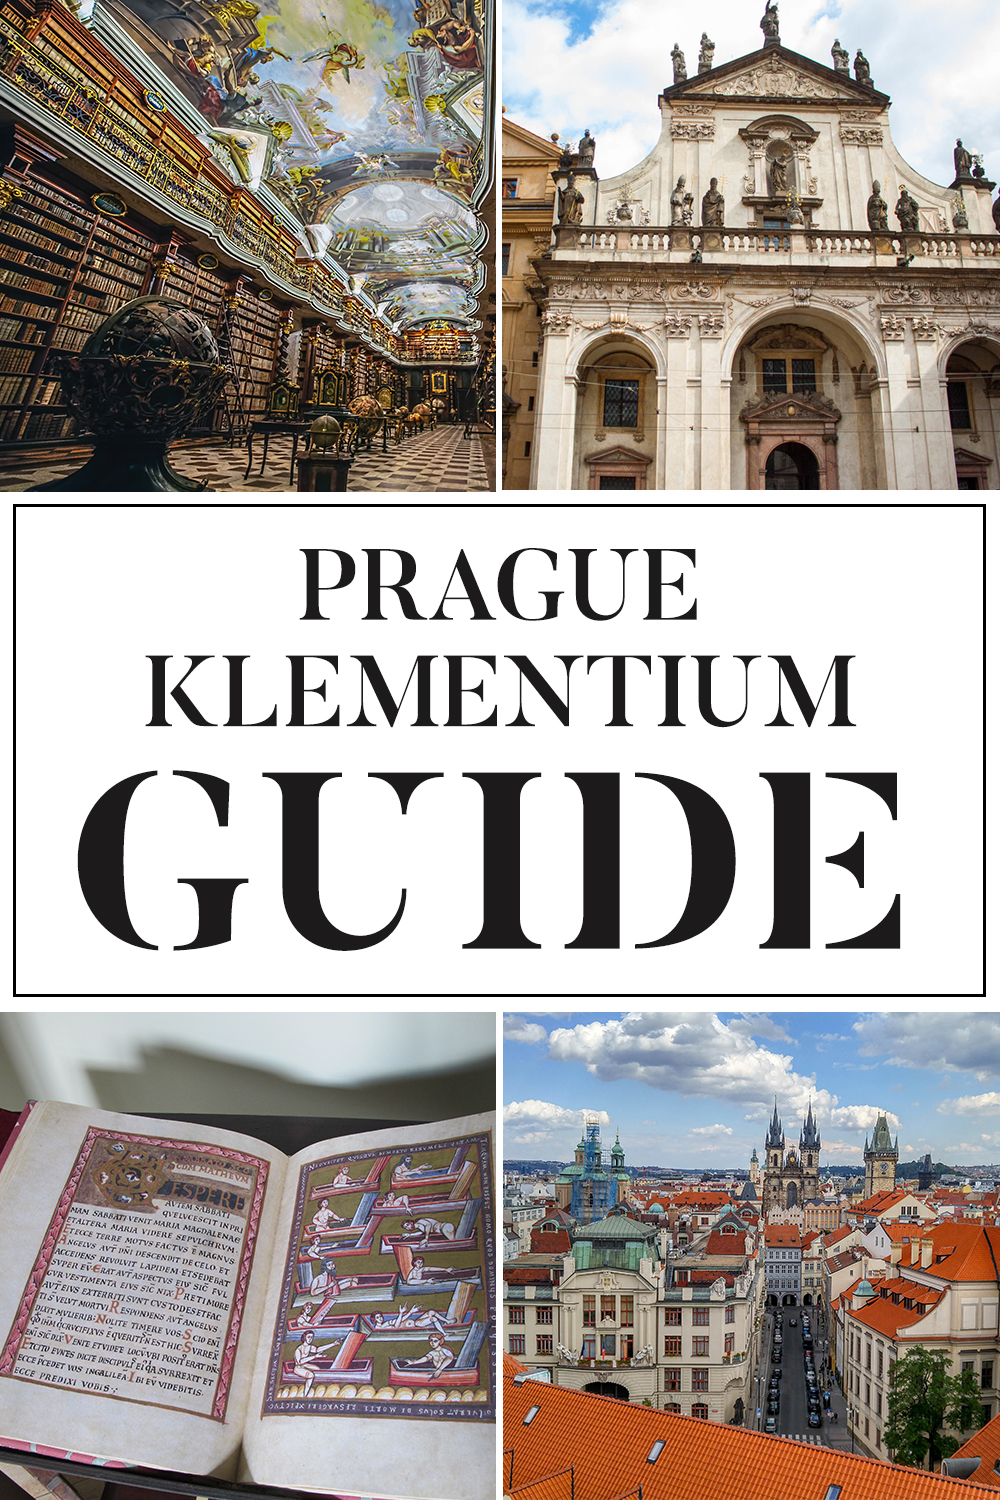 A Guide to the Prague Klementium